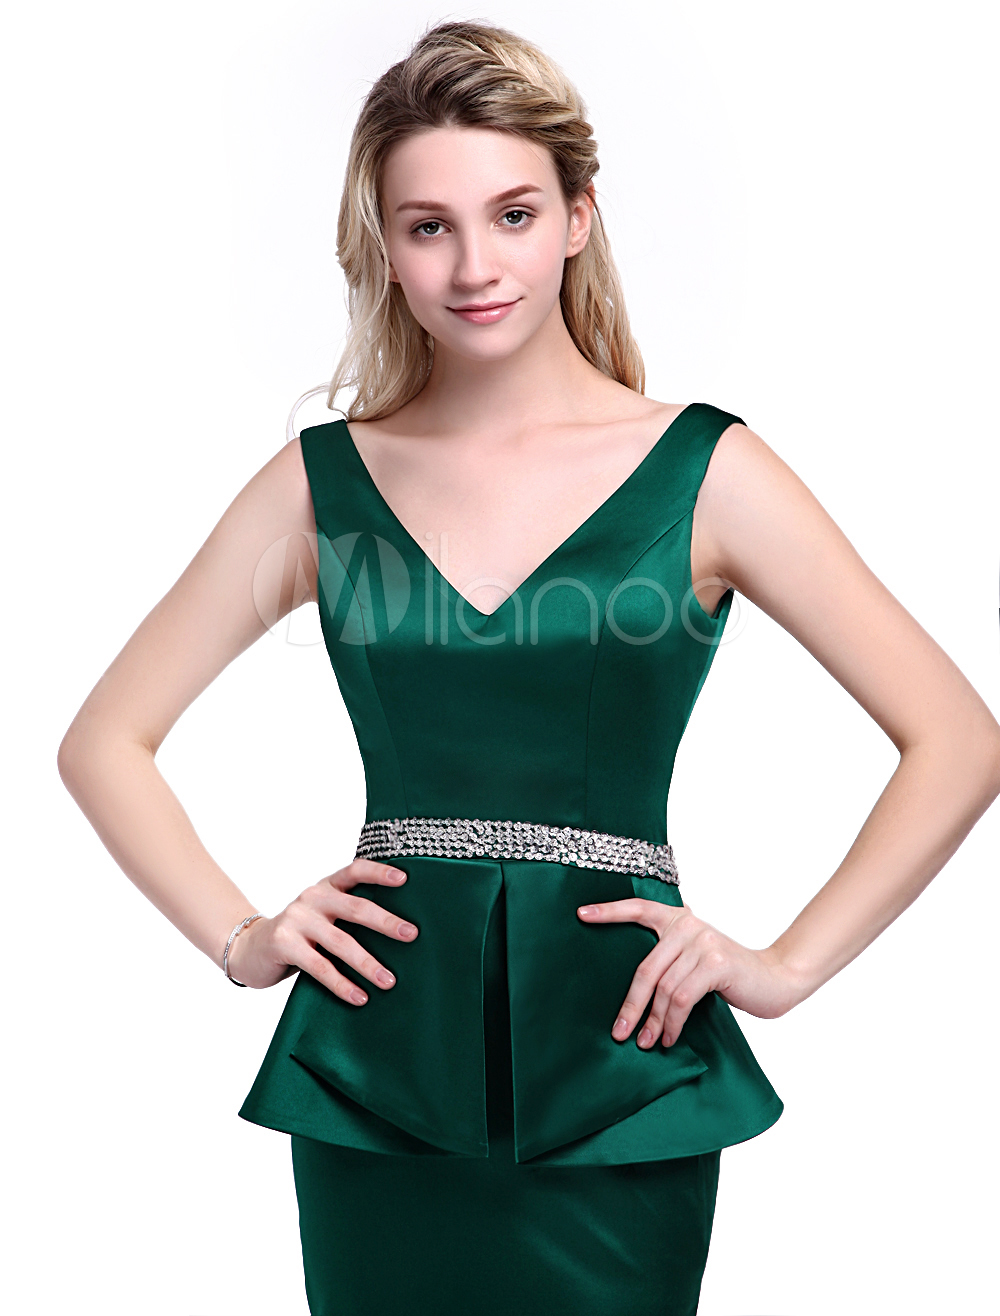 63287702ea86 Dark Green Dress For Mother of the Bride with Sheath Off-The-Shoulder Satin  Wedding Guest Dress Milanoo  Mother